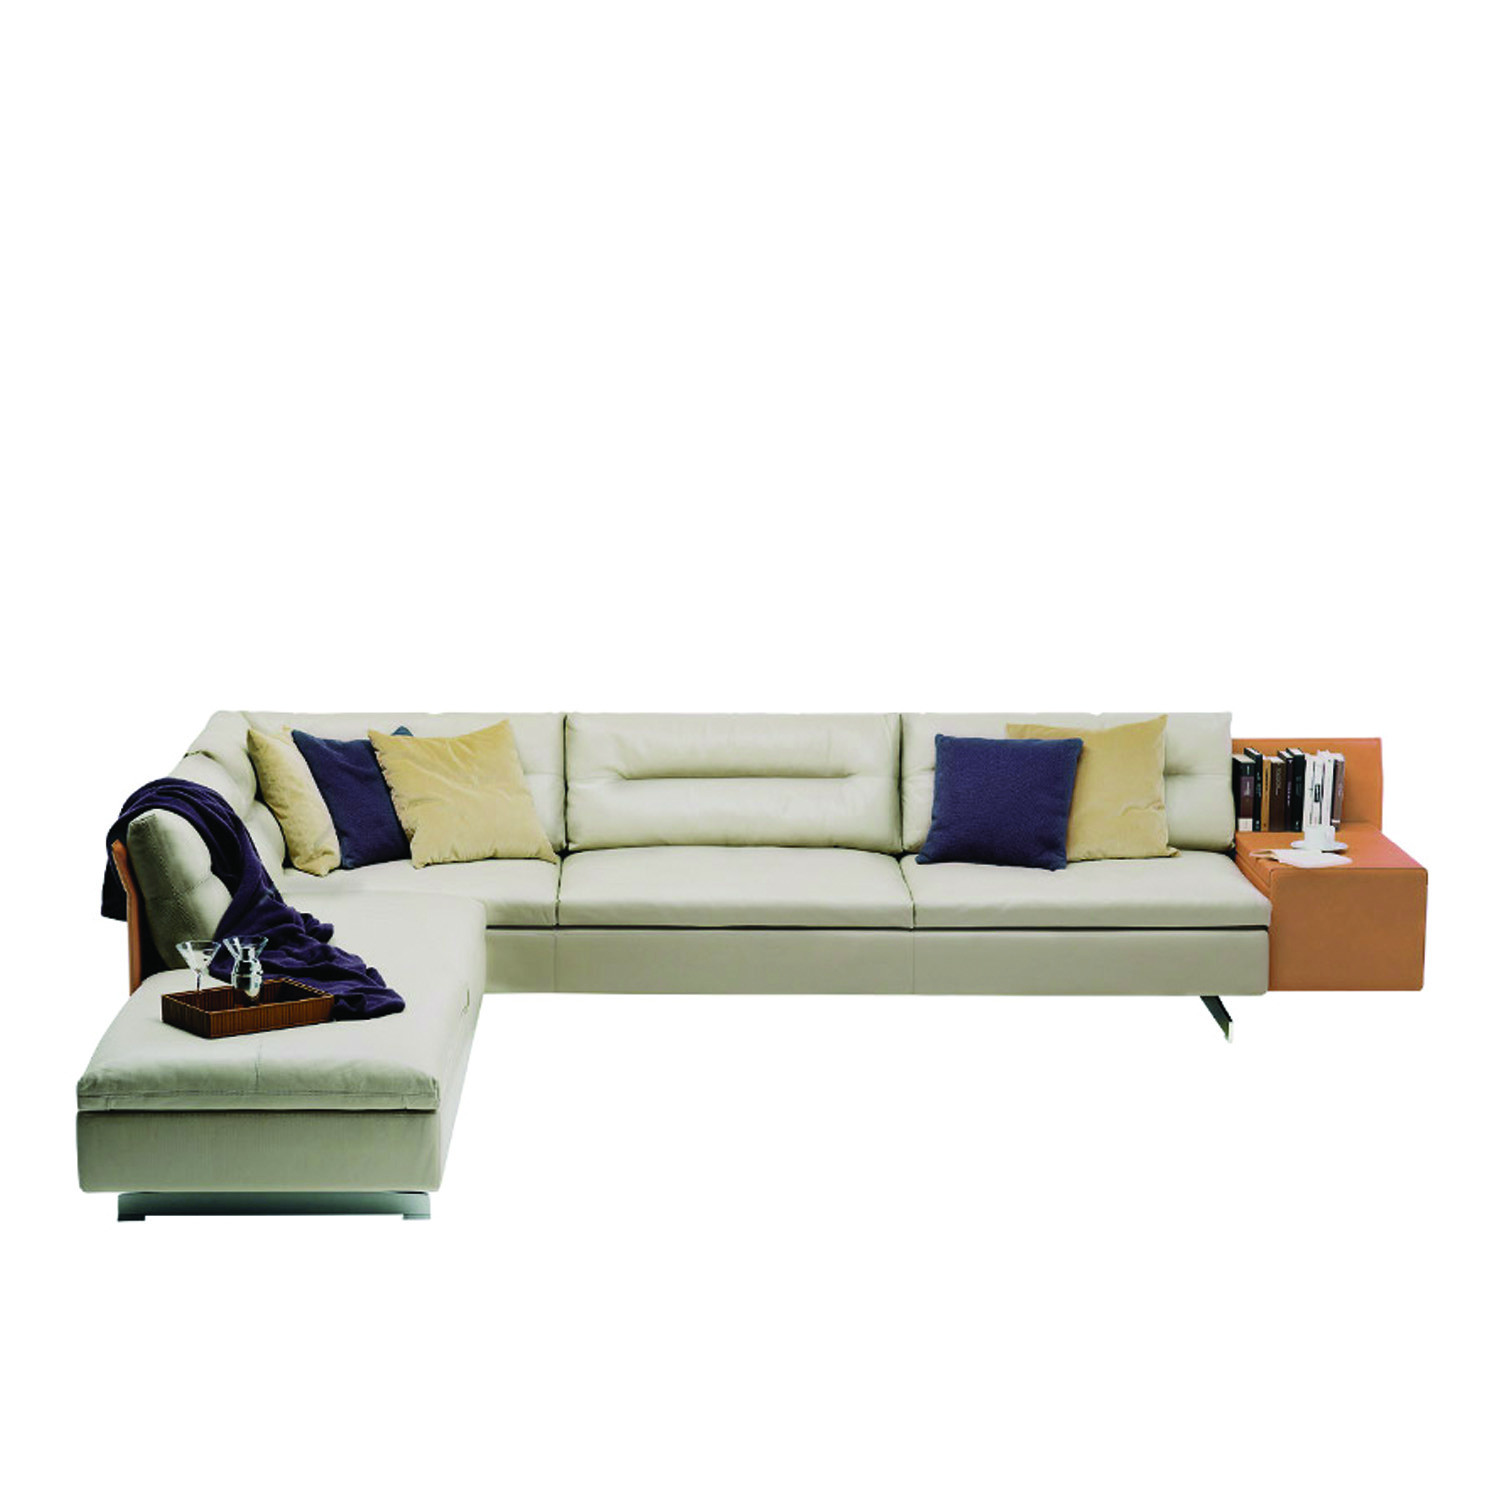 Grantorino Modular Sofa with Chaise